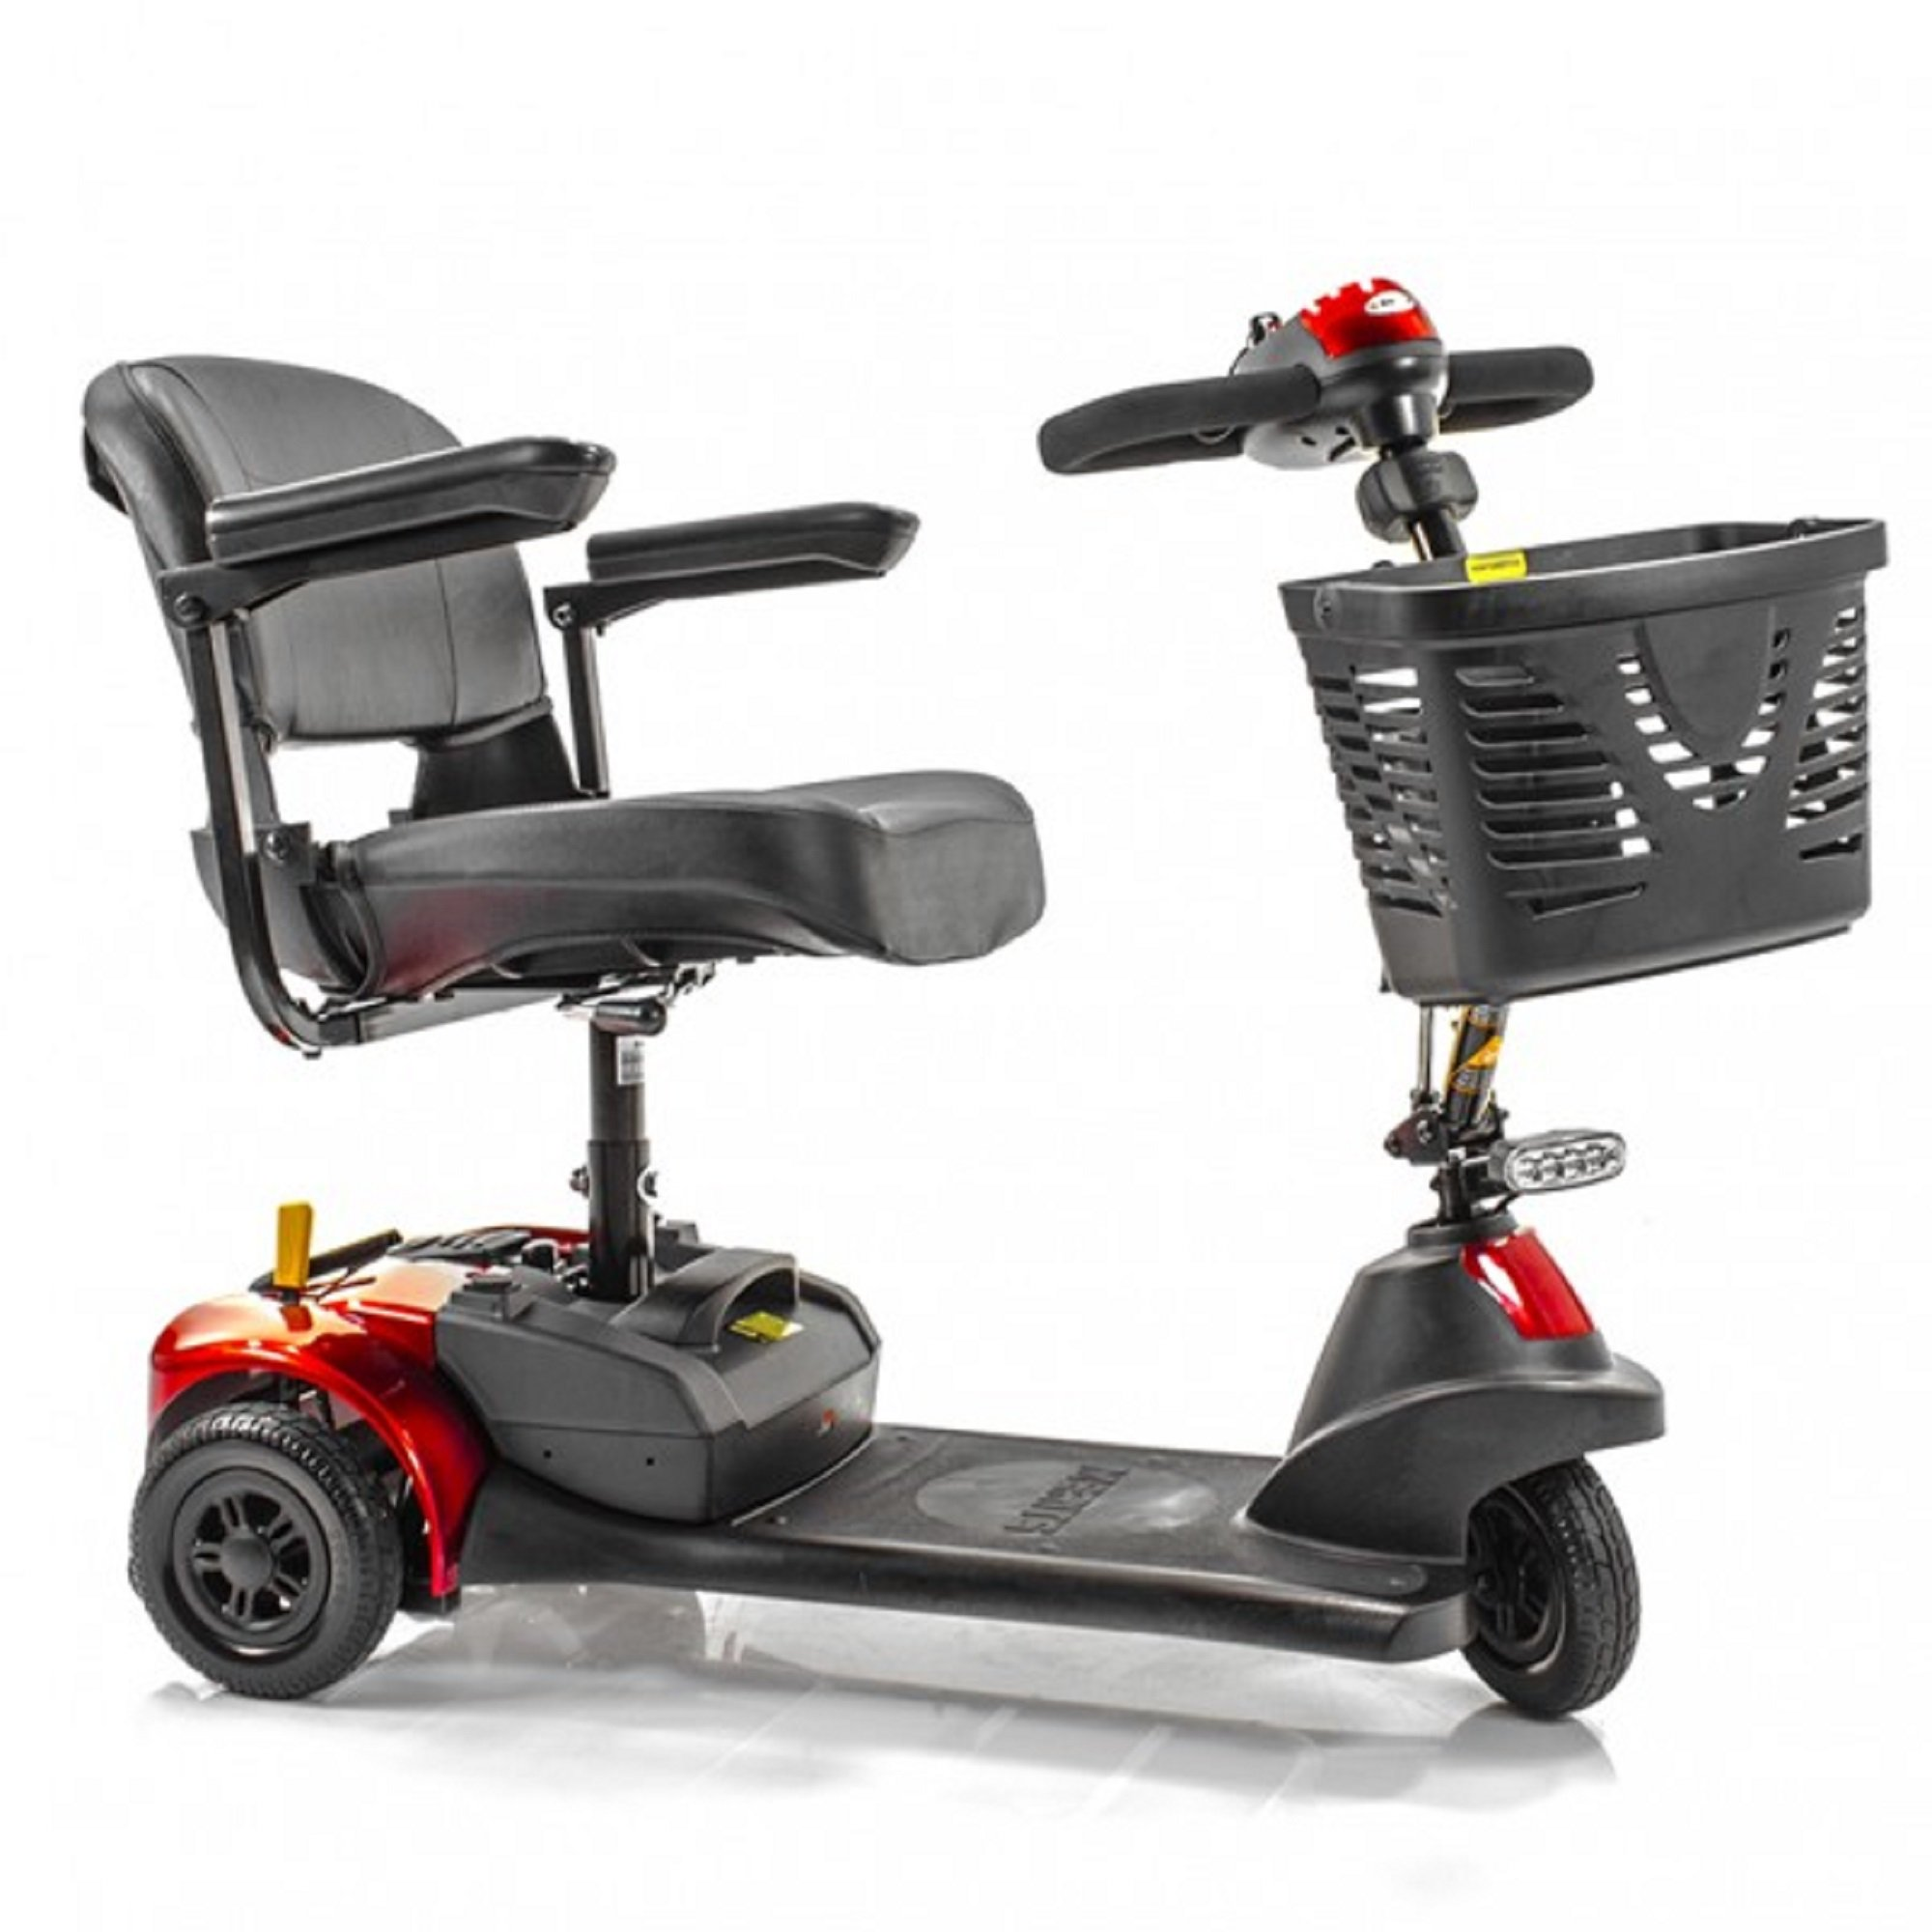 Merits Health Products - Roadster Deluxe - 3-Wheel Scooter - 18''W x 15''D - Red - PHILLIPS POWER PACKAGE TM - TO $500 VALUE by ROADSTER (Image #2)